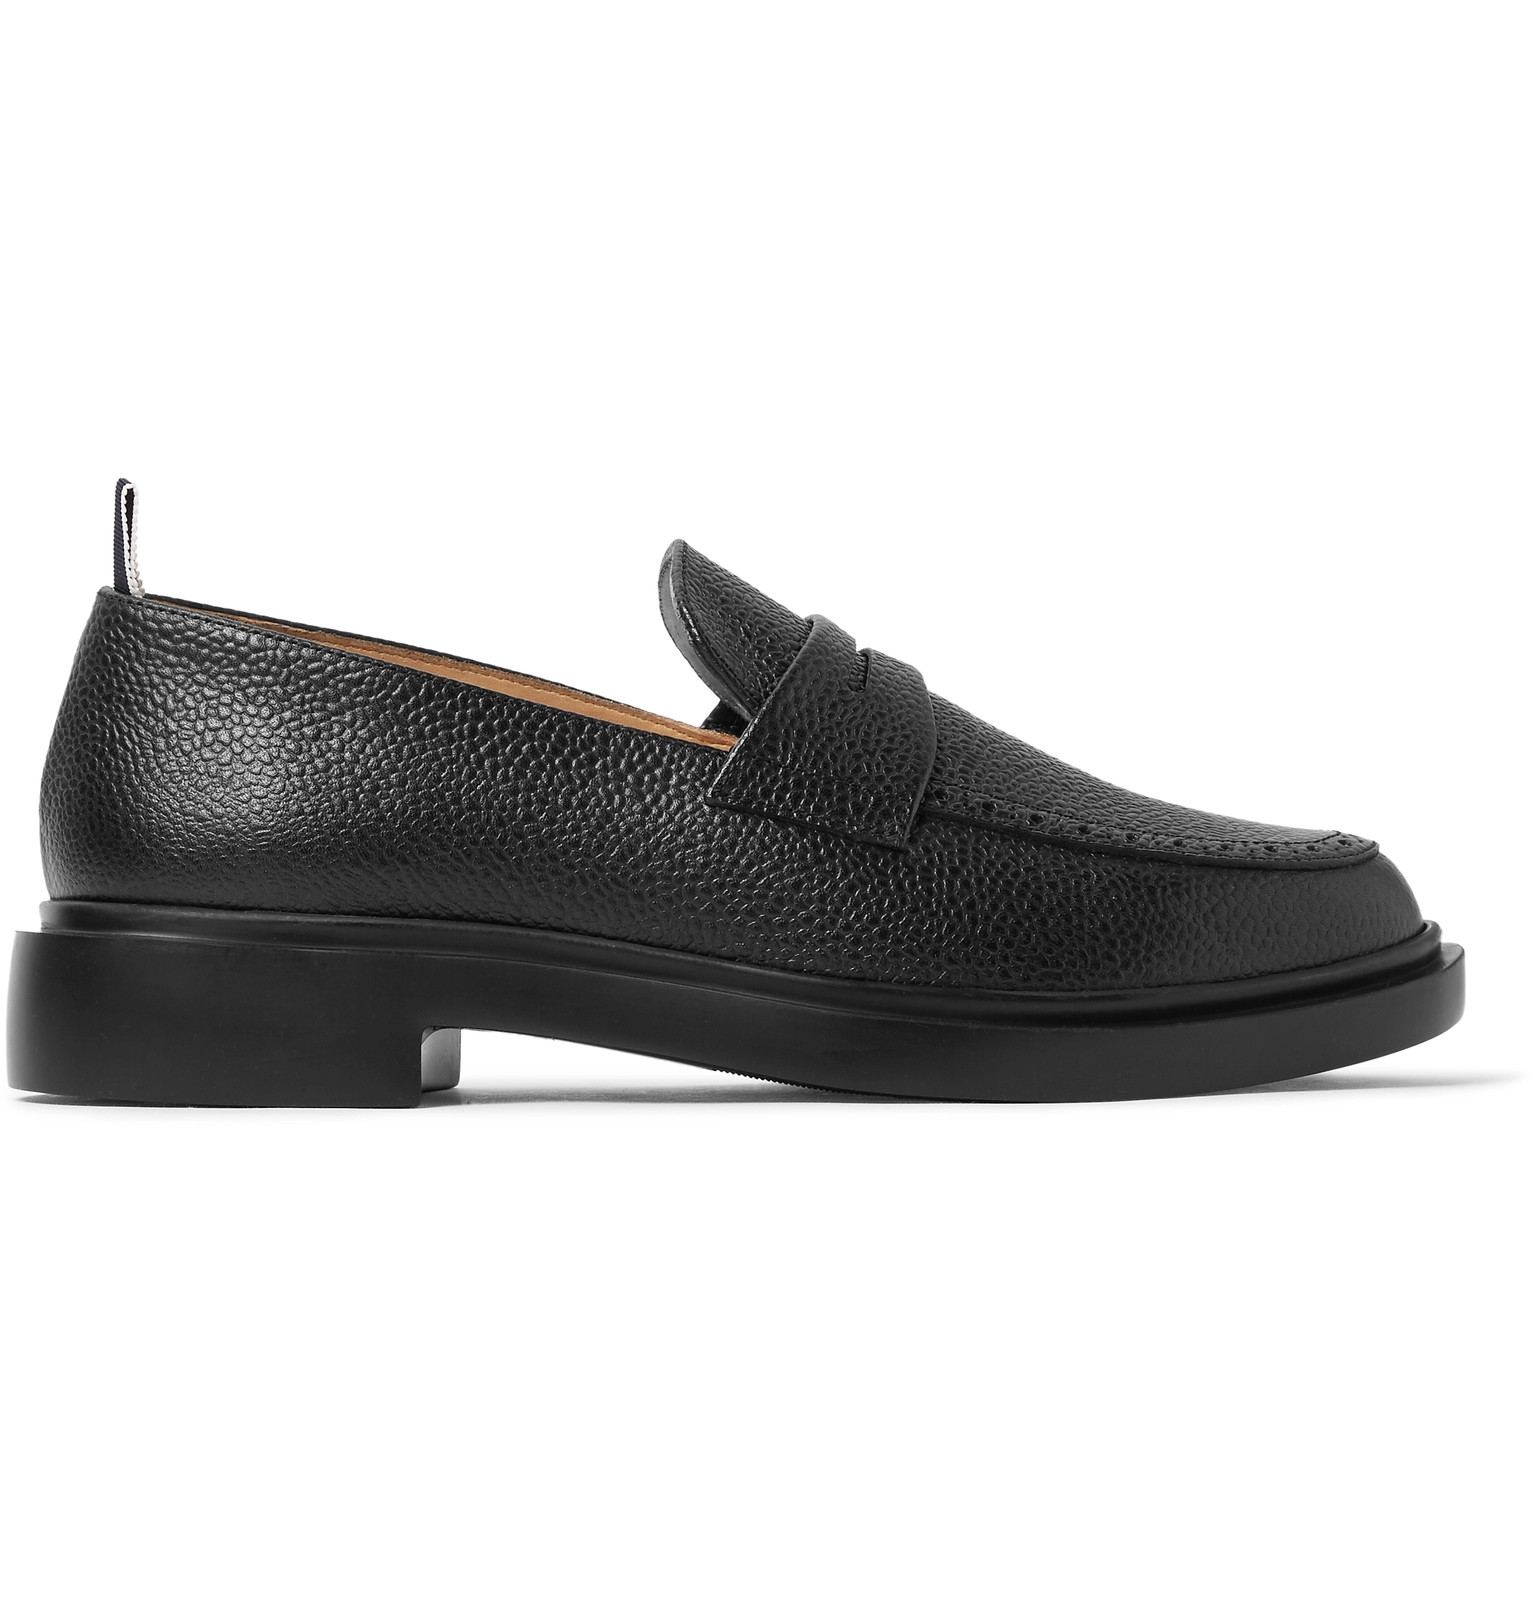 19cd3606b5f Thom Browne - Pebble-Grain Leather Penny Loafers